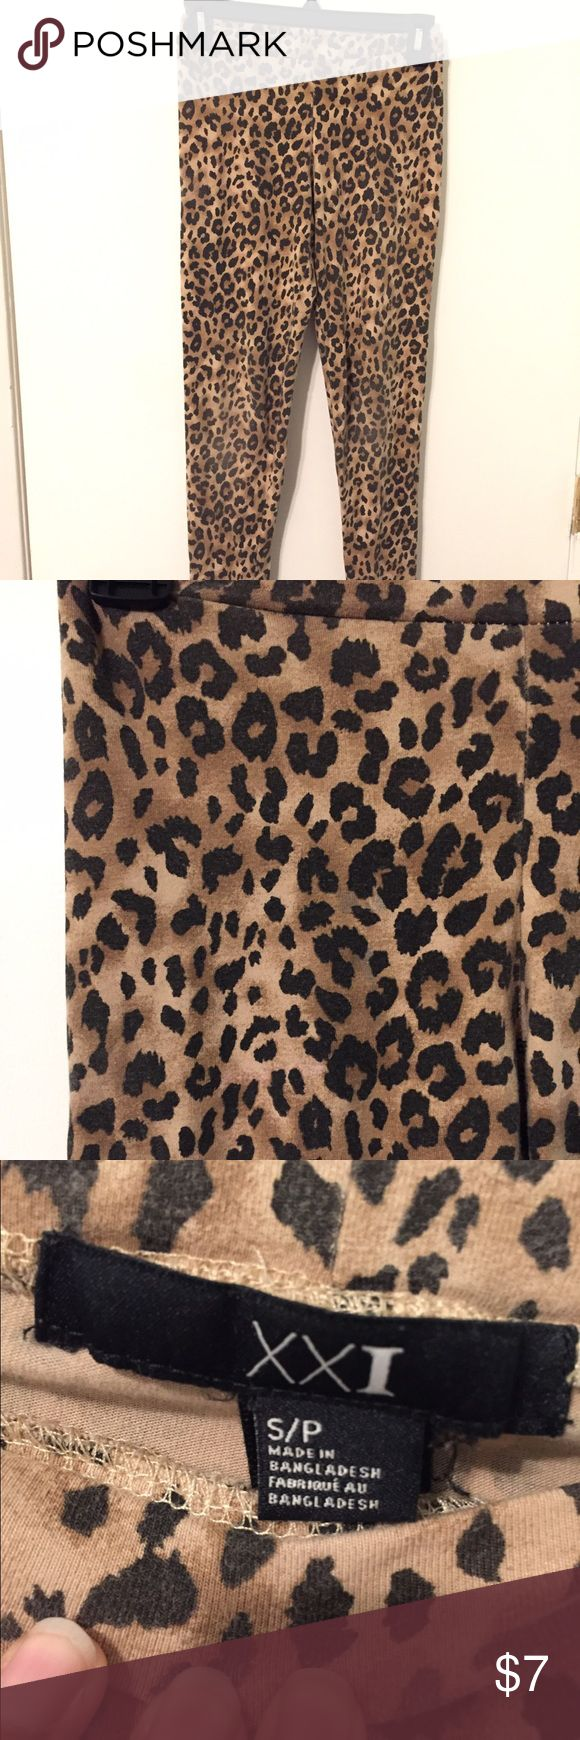 Forever 21 leopard leggings Forever 21 leopard leggings Forever 21 Pants Leggings